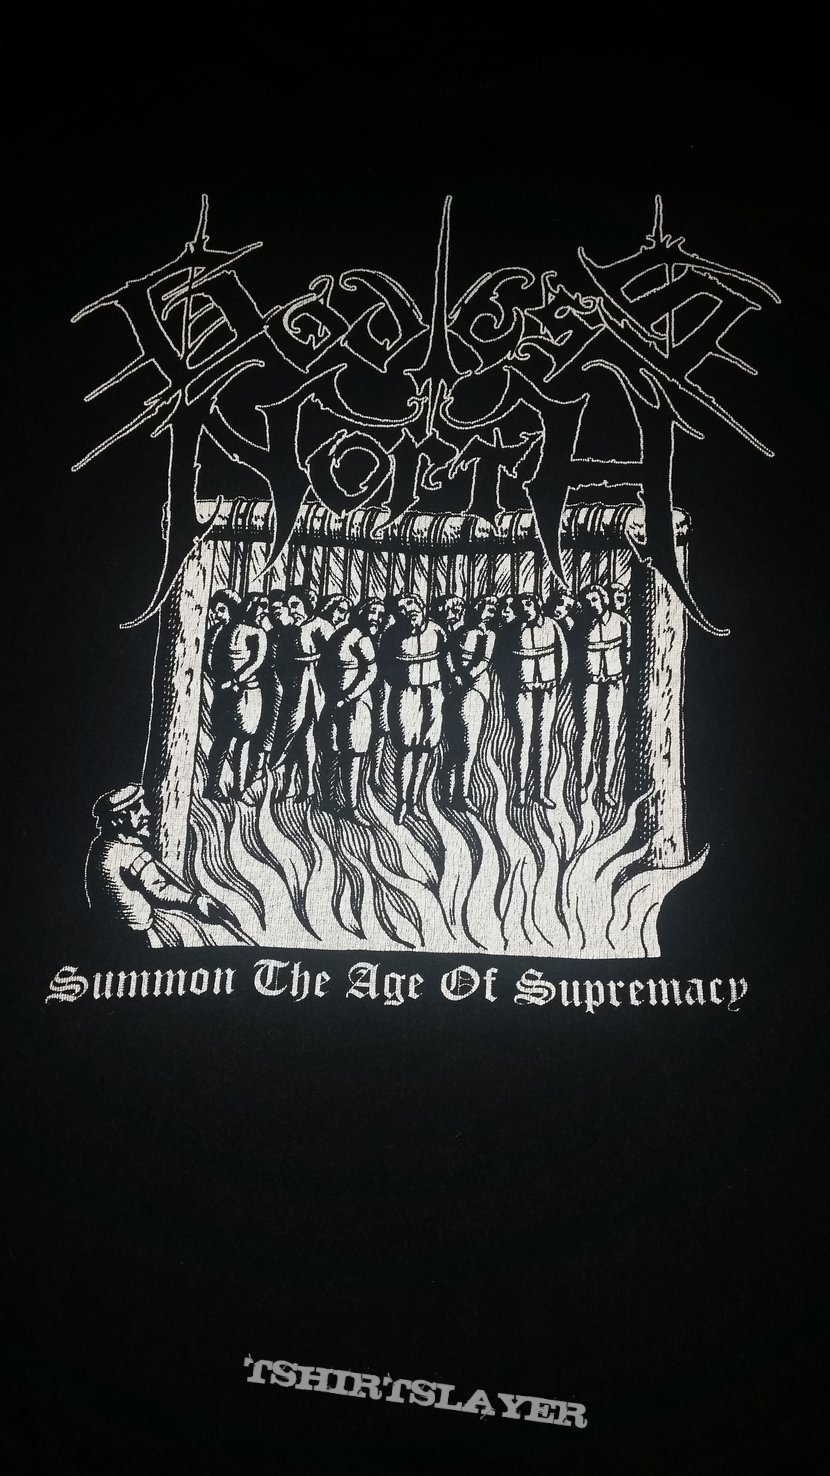 Godless North - Summon the age of supremacy LS